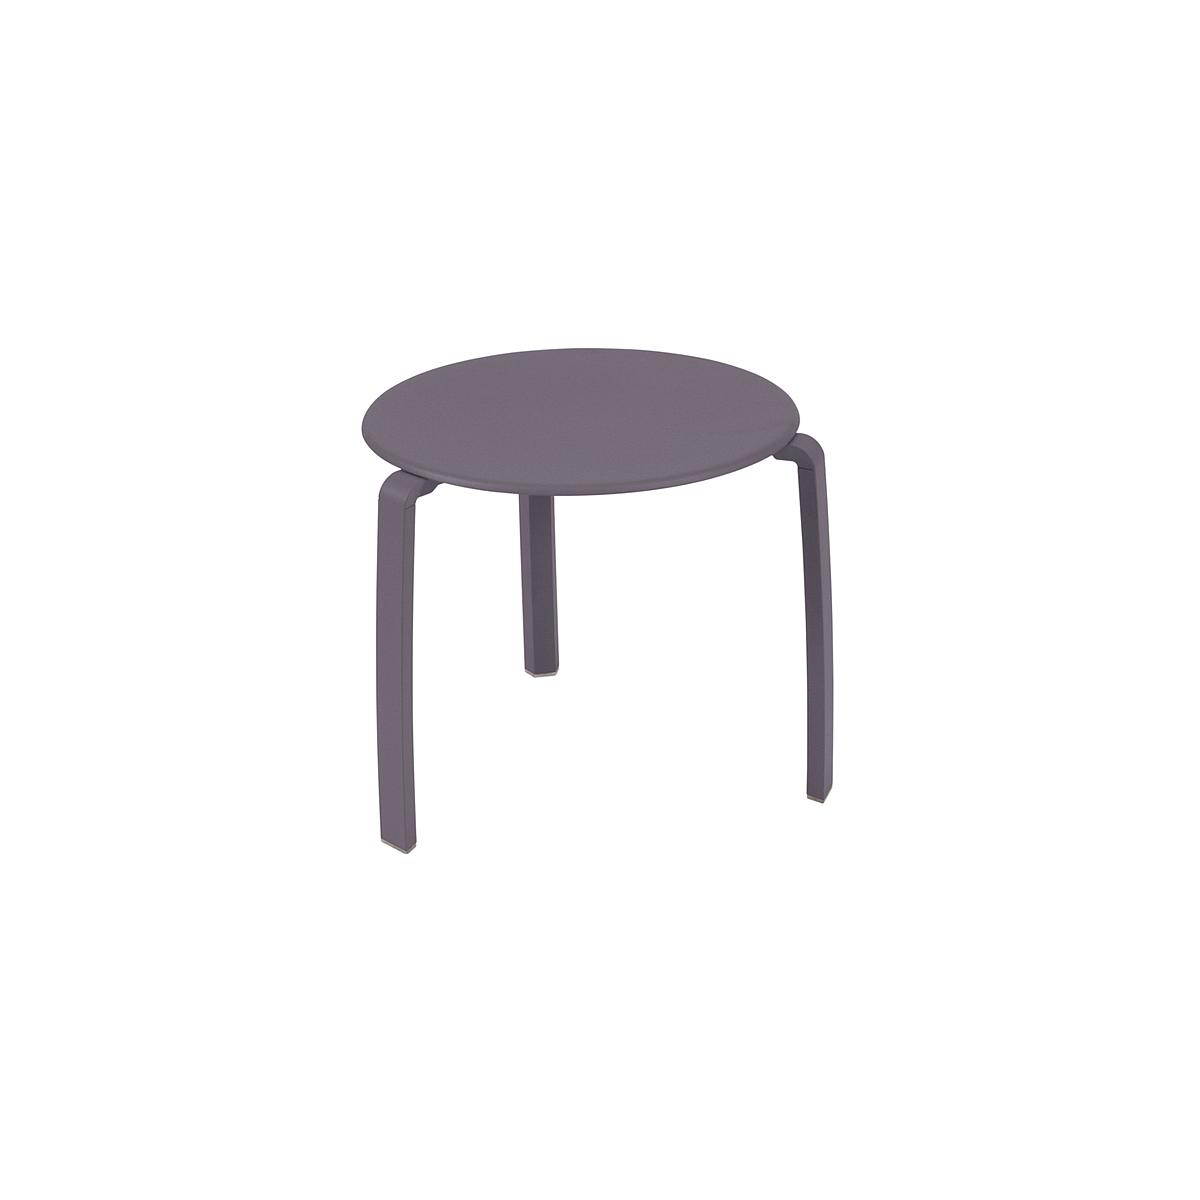 ALIZE by Fermob Table basse prune